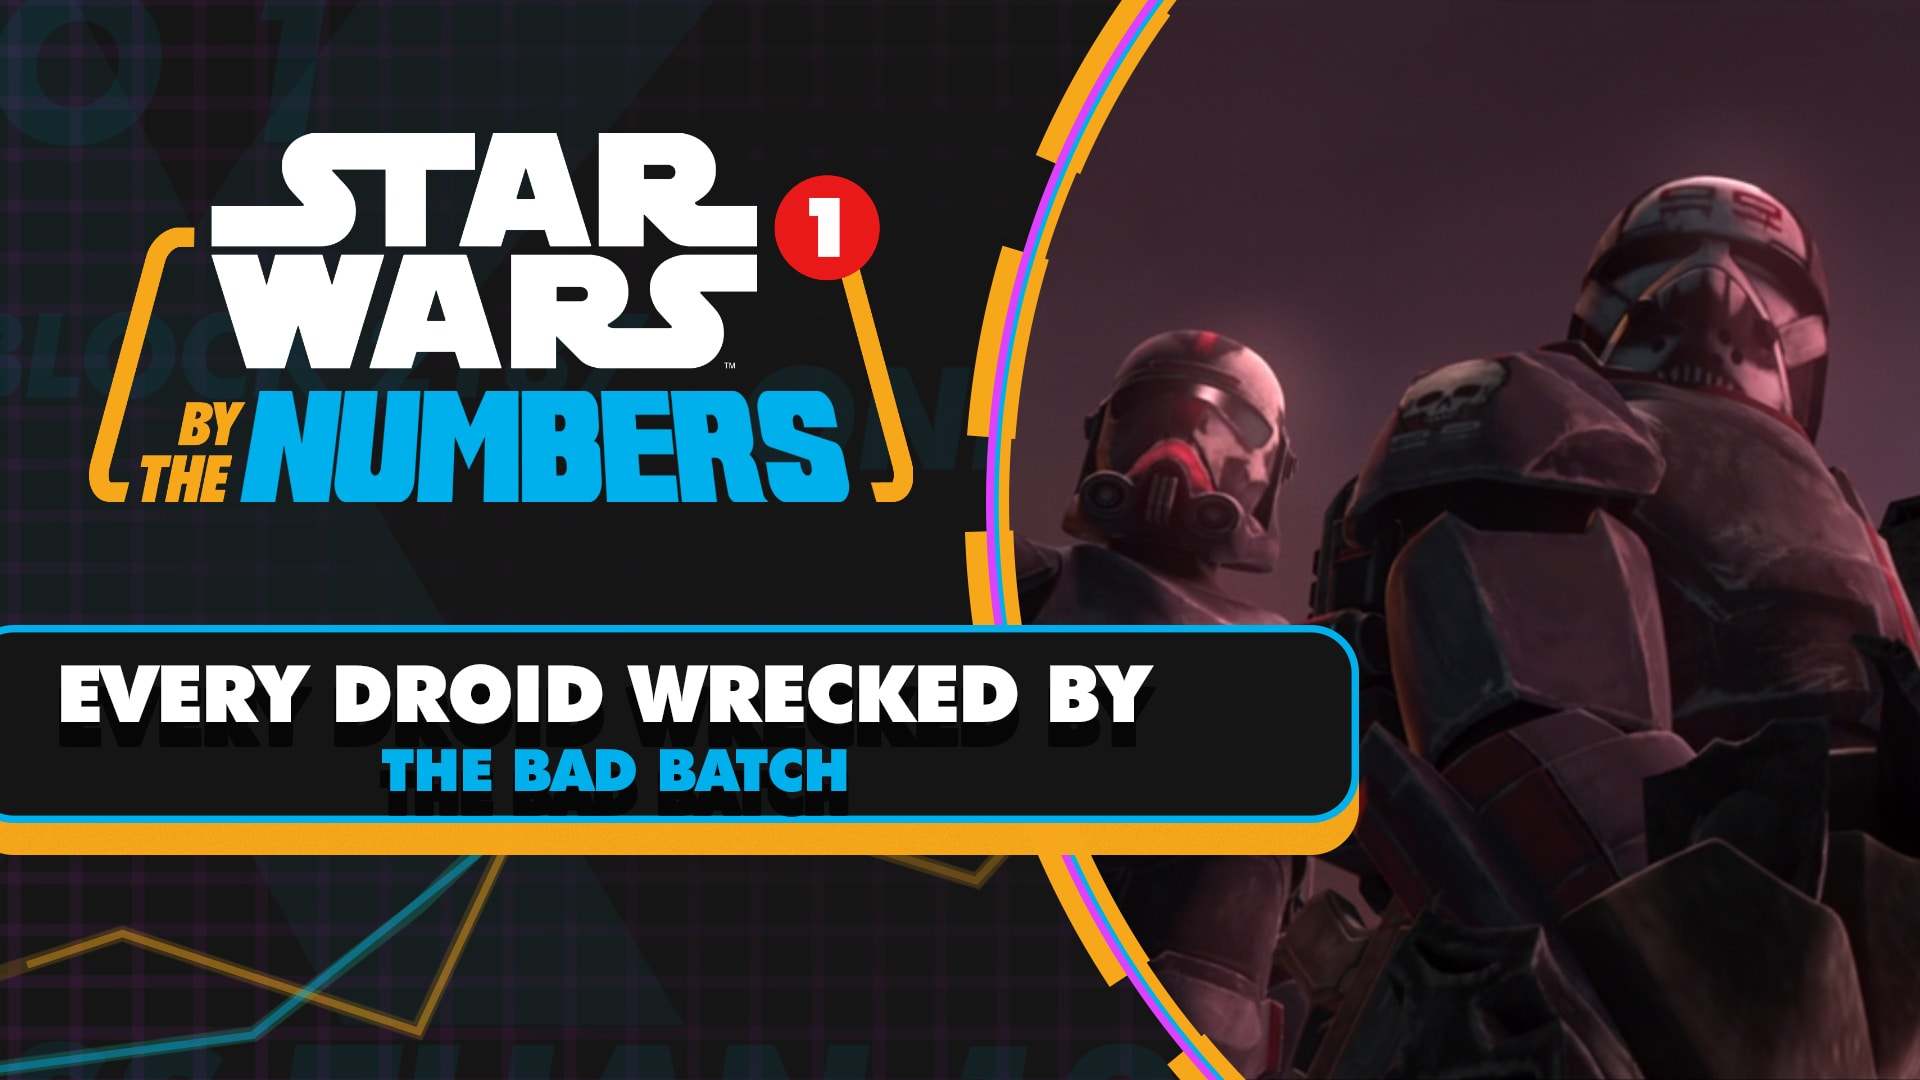 Every Droid Wrecked by the Bad Batch | Star Wars By the Numbers